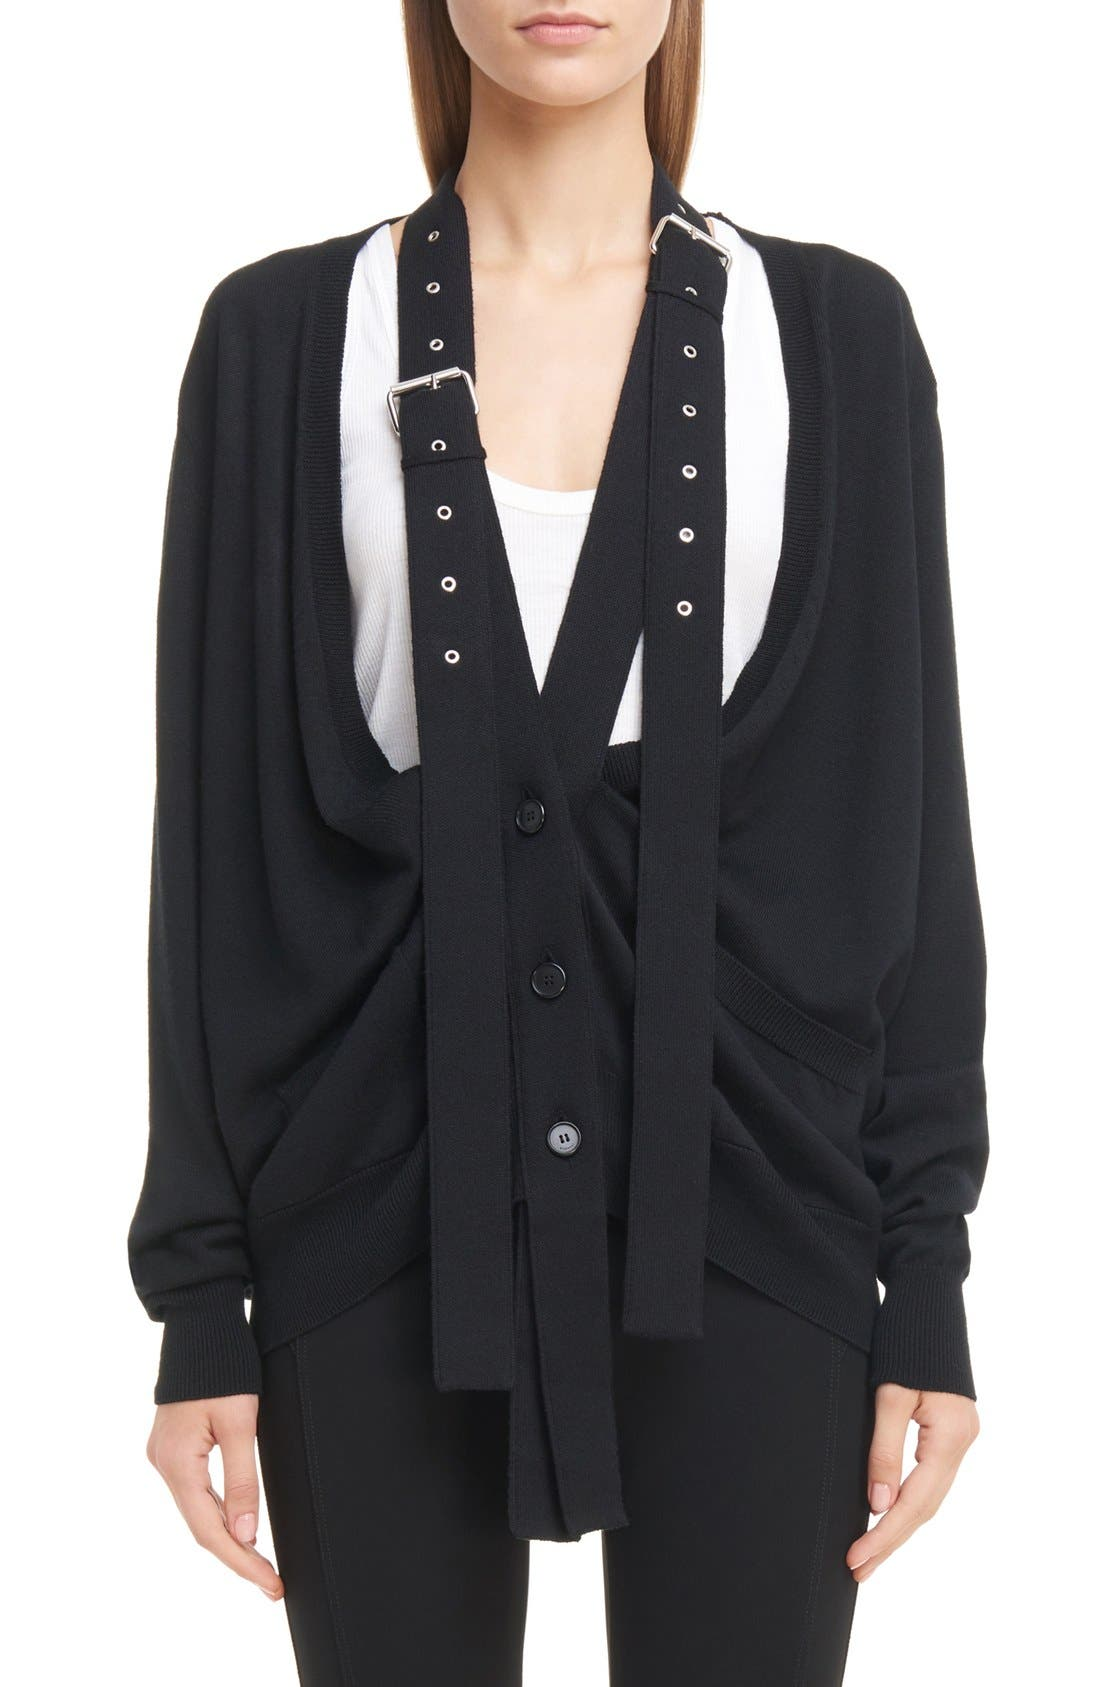 GIVENCHY Wool & Silk Cardigan with Attached Suspenders